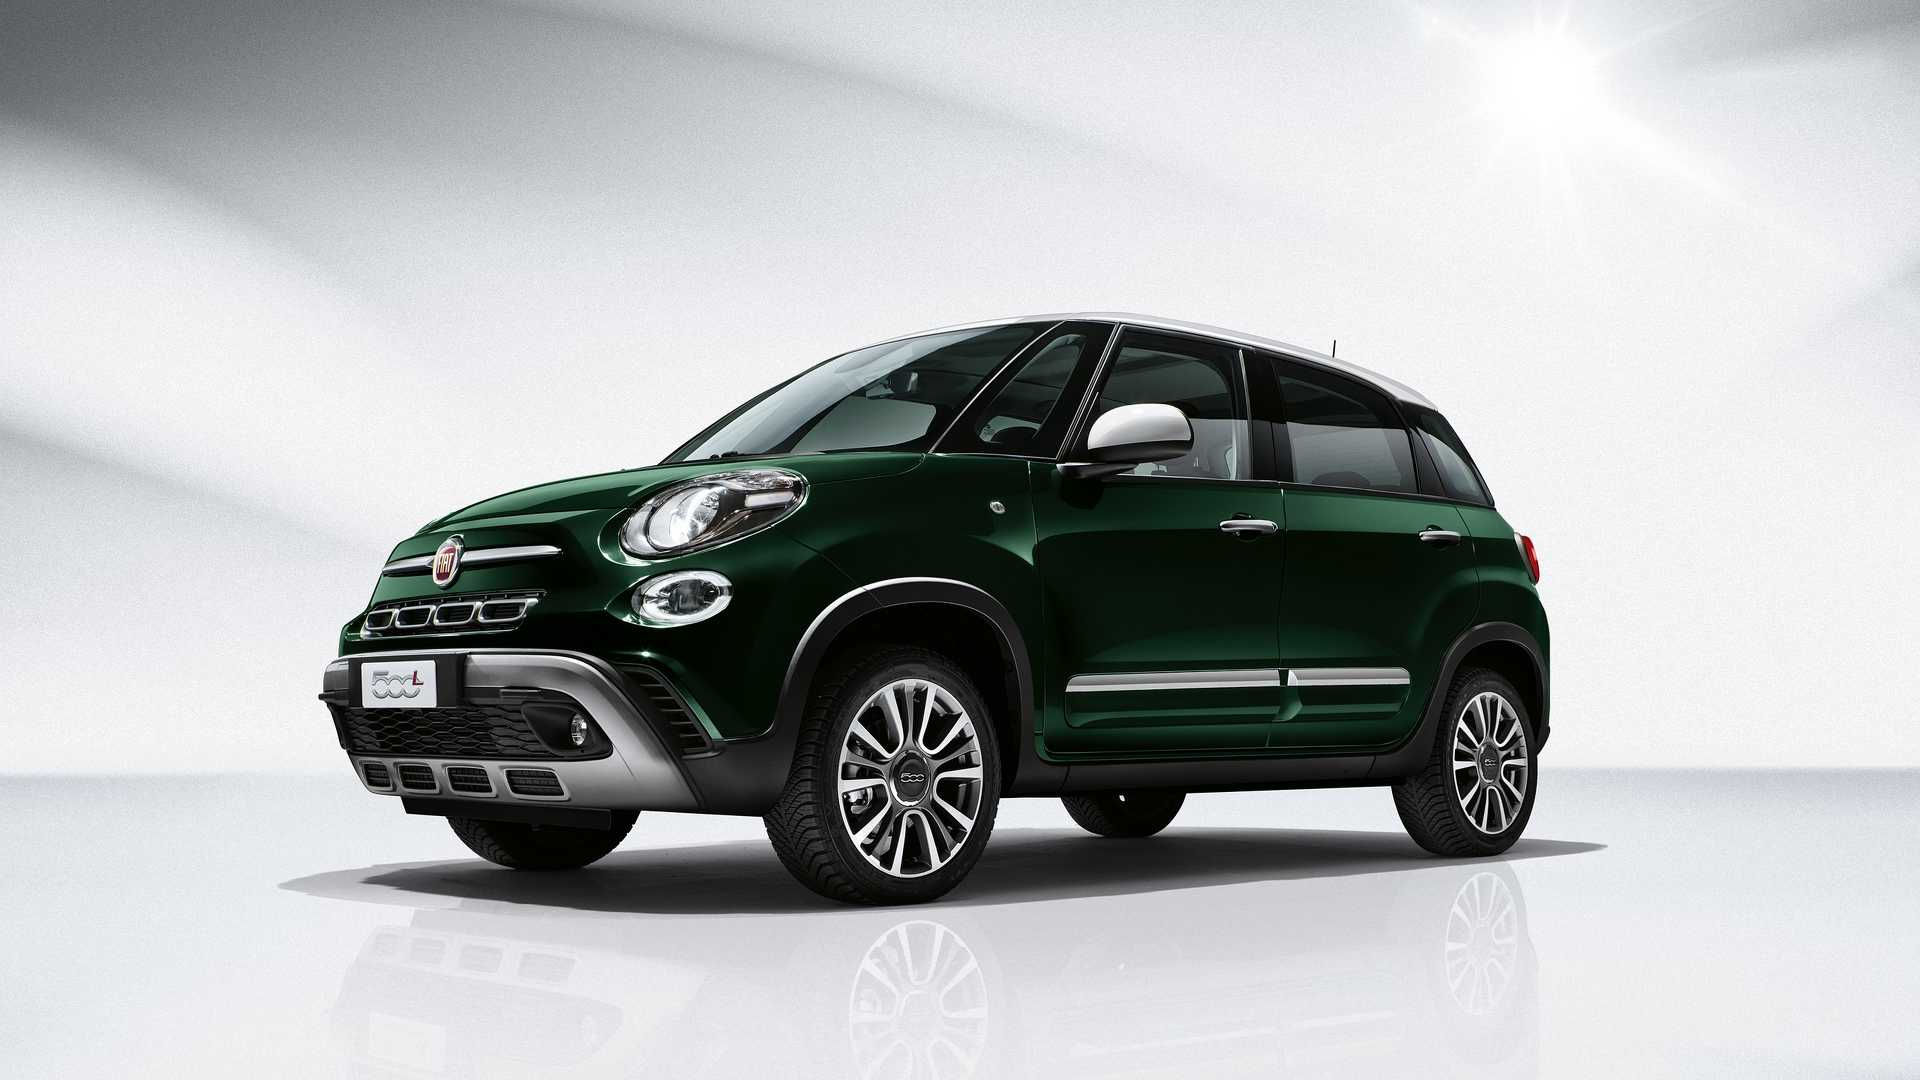 2018_Fiat_500L_cross_facelift_10